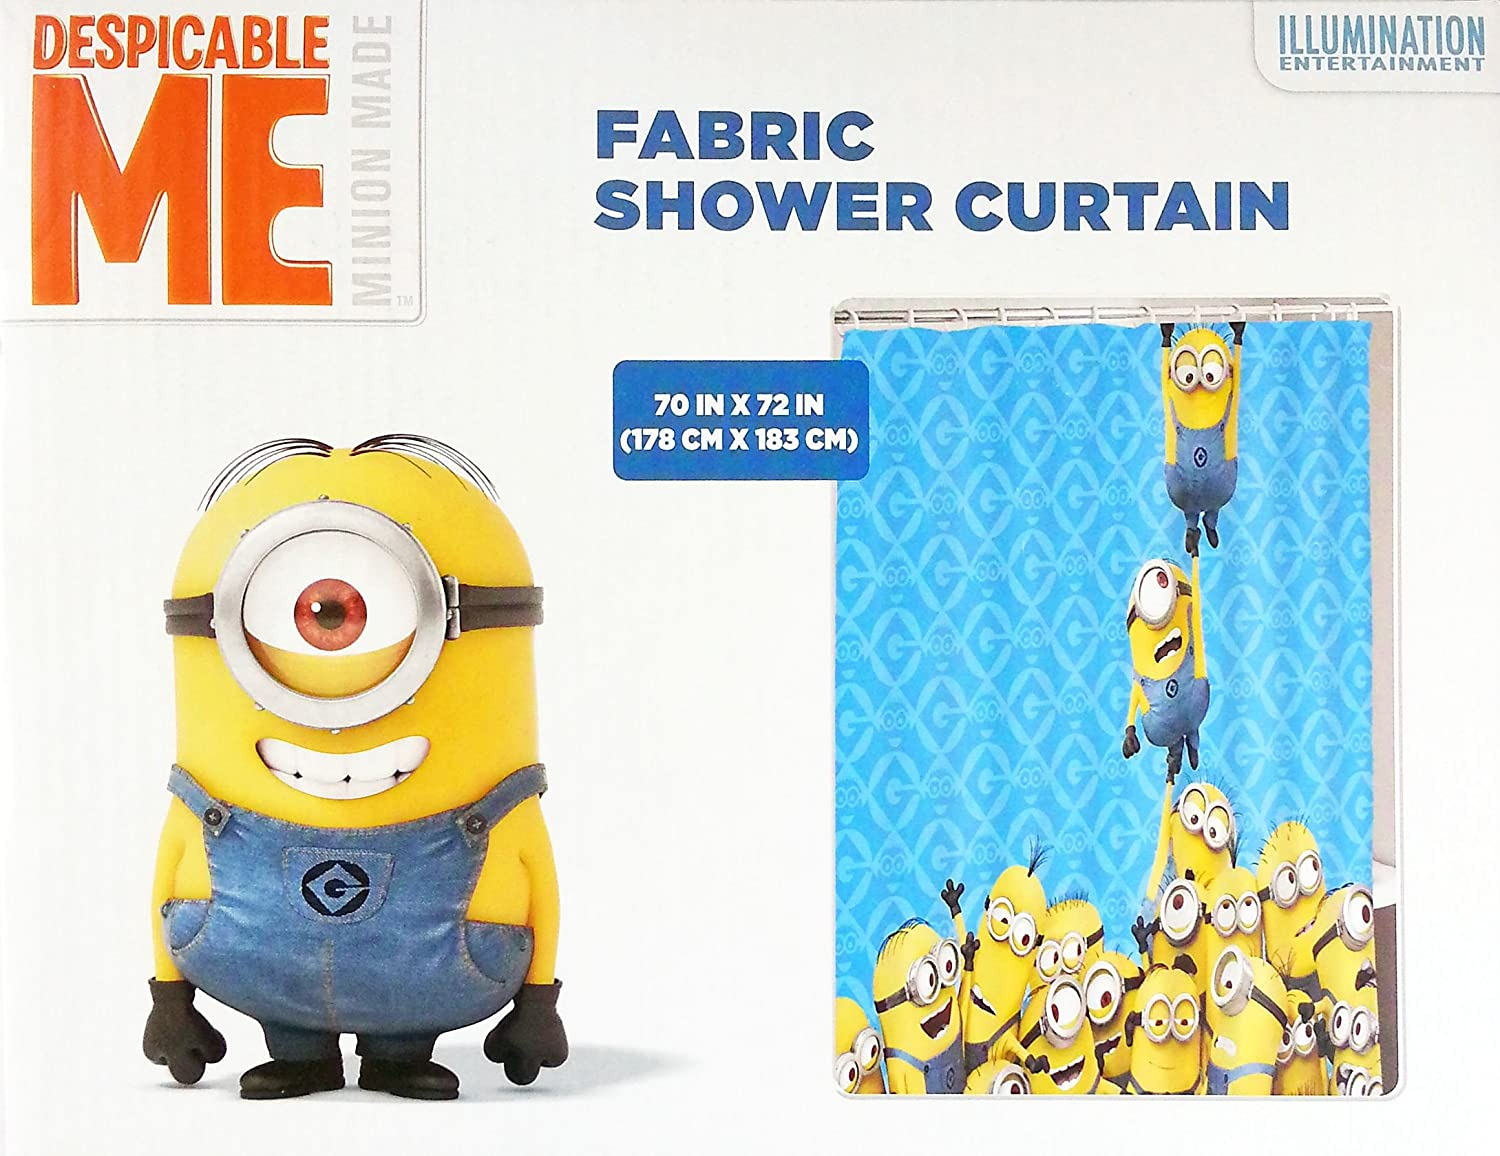 Despicable Me Minions Fabric Shower Curtain